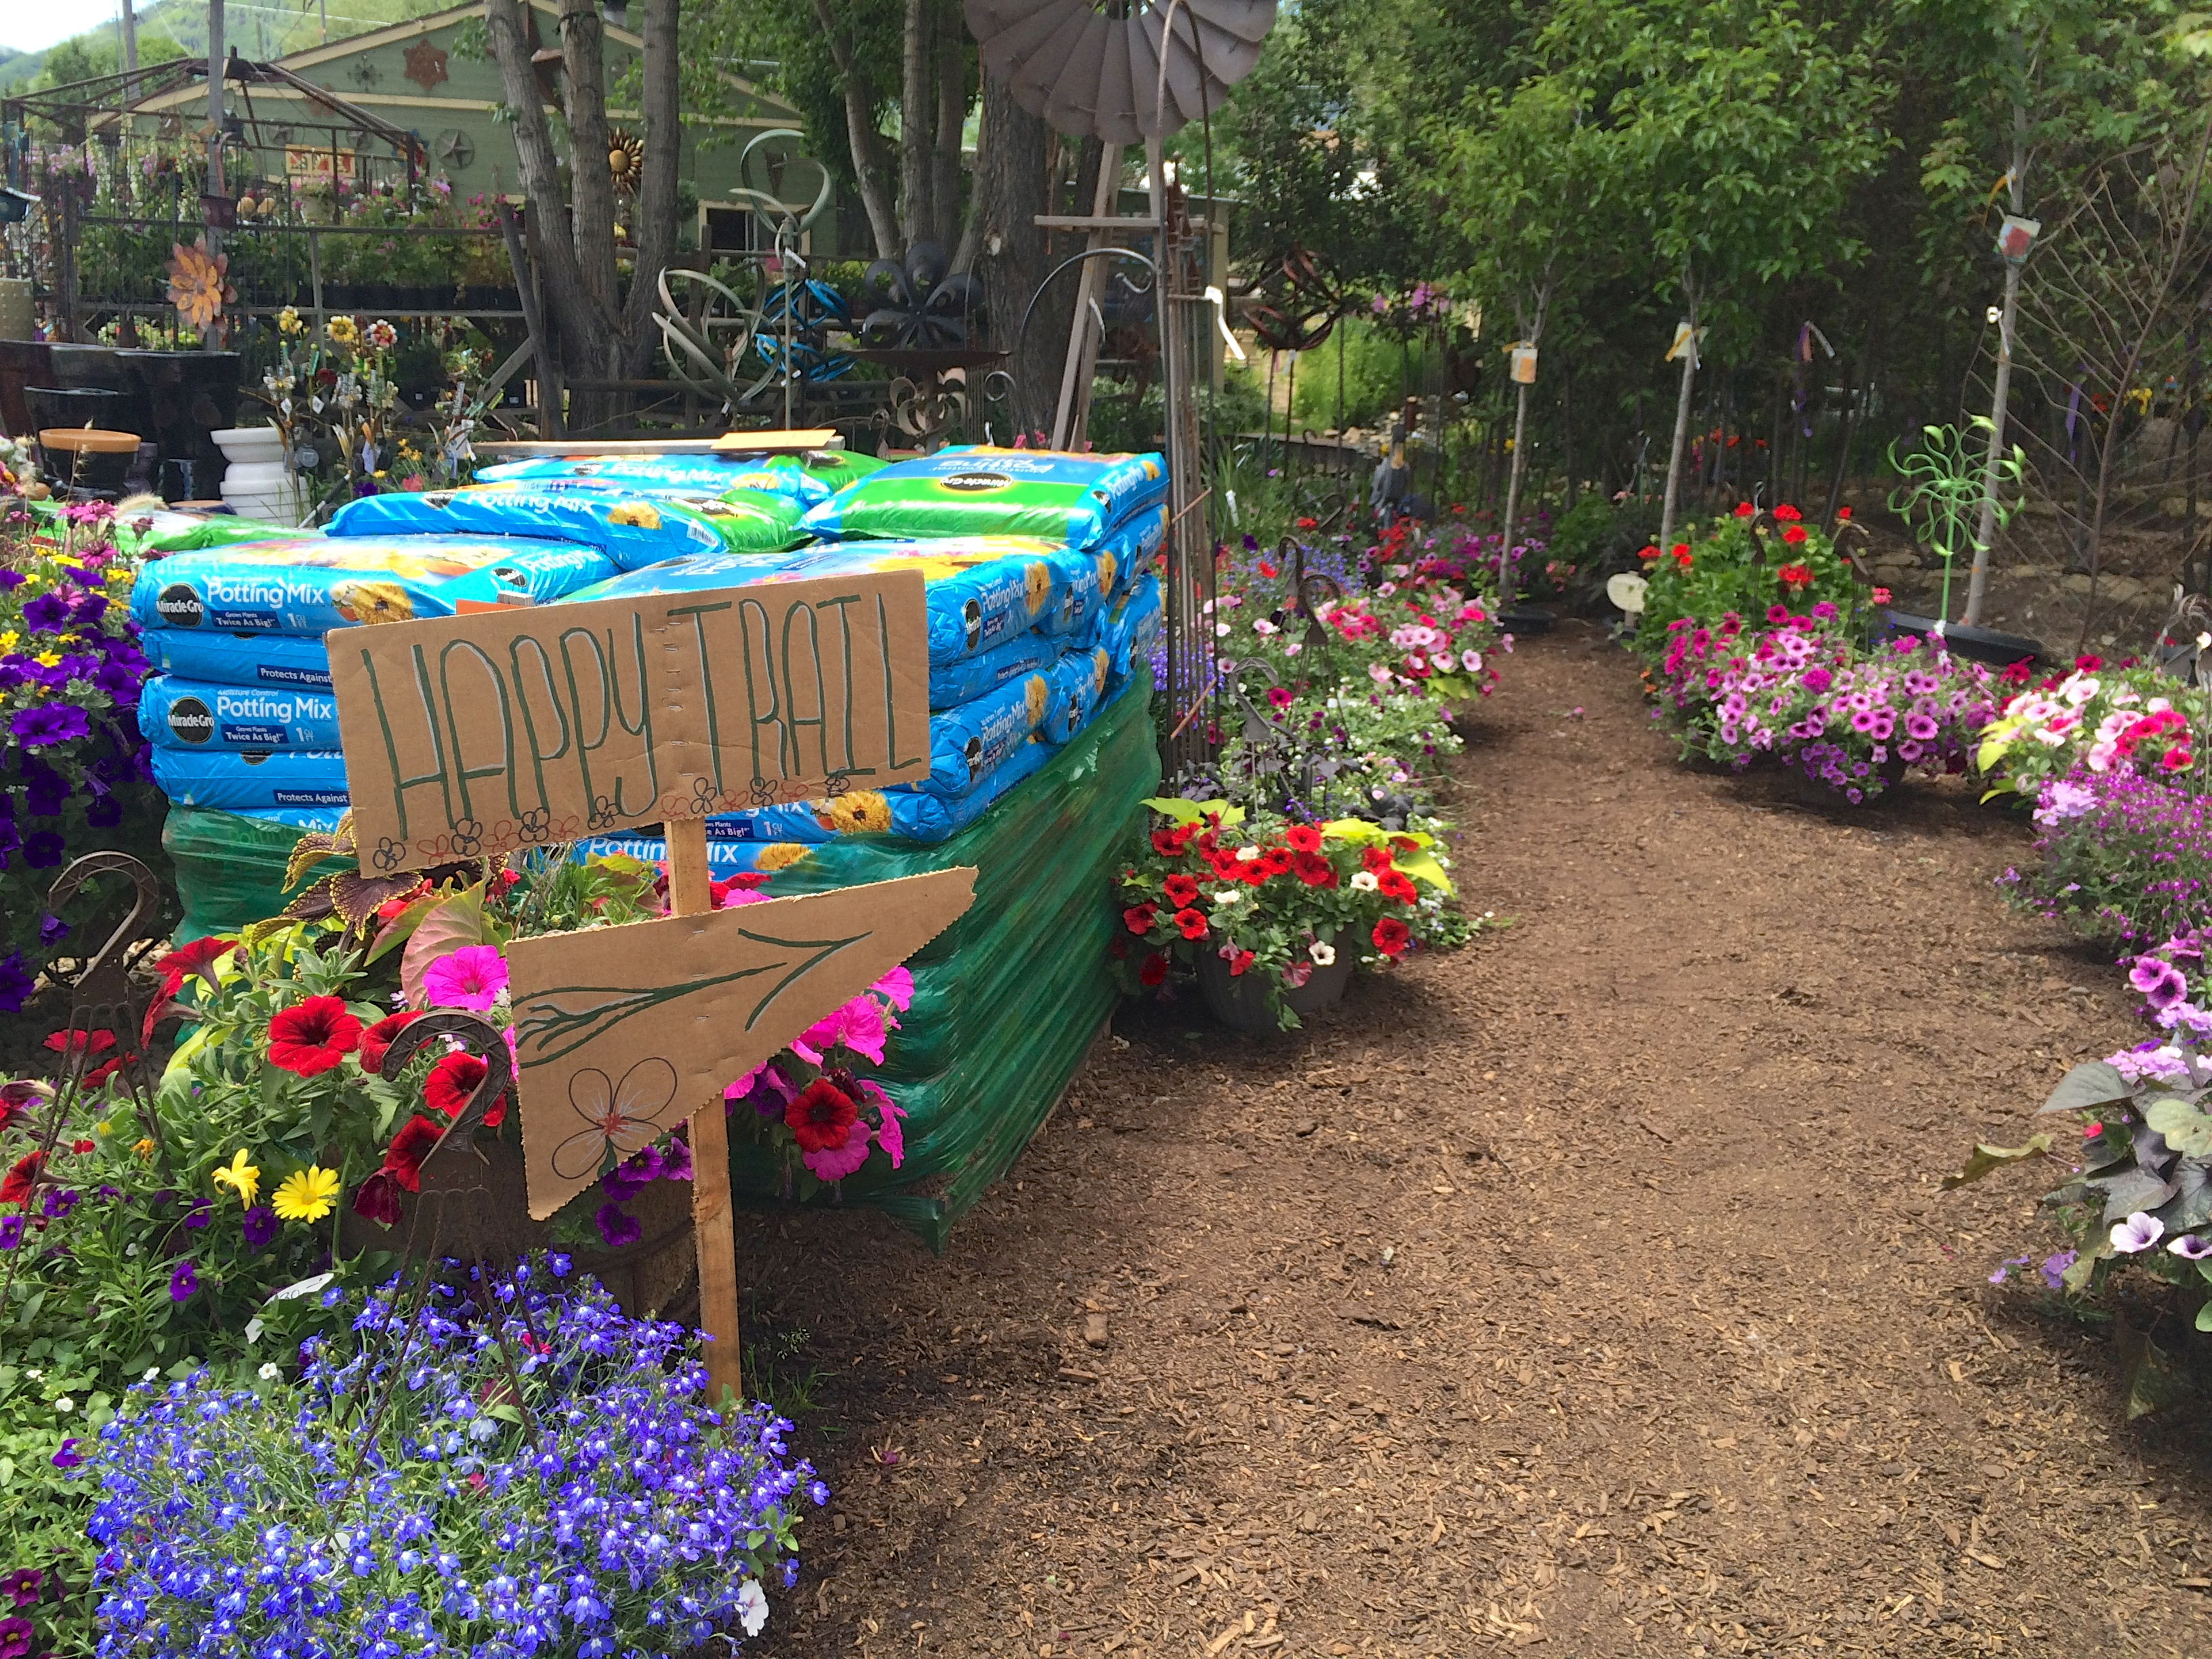 Homegrown: Garden 2015 – the usual bliss